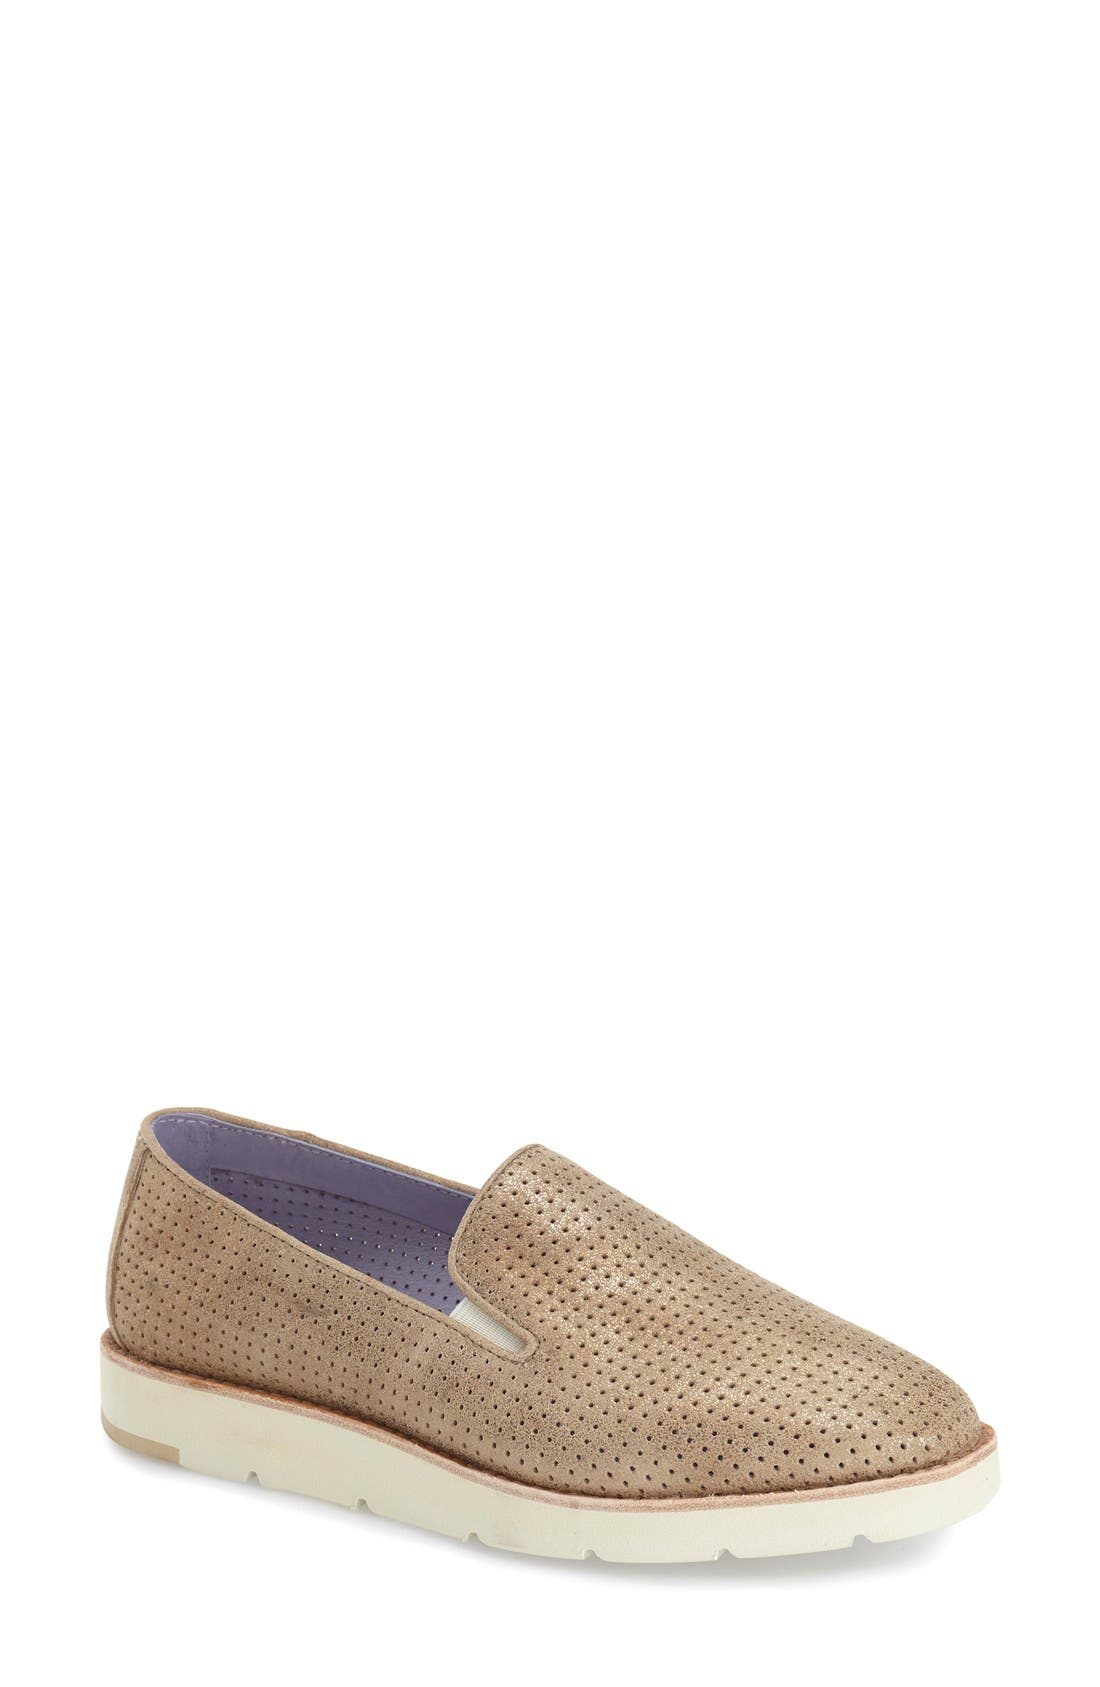 Johnston & Murphy 'Paulette' Slip-On Sneaker (Women)